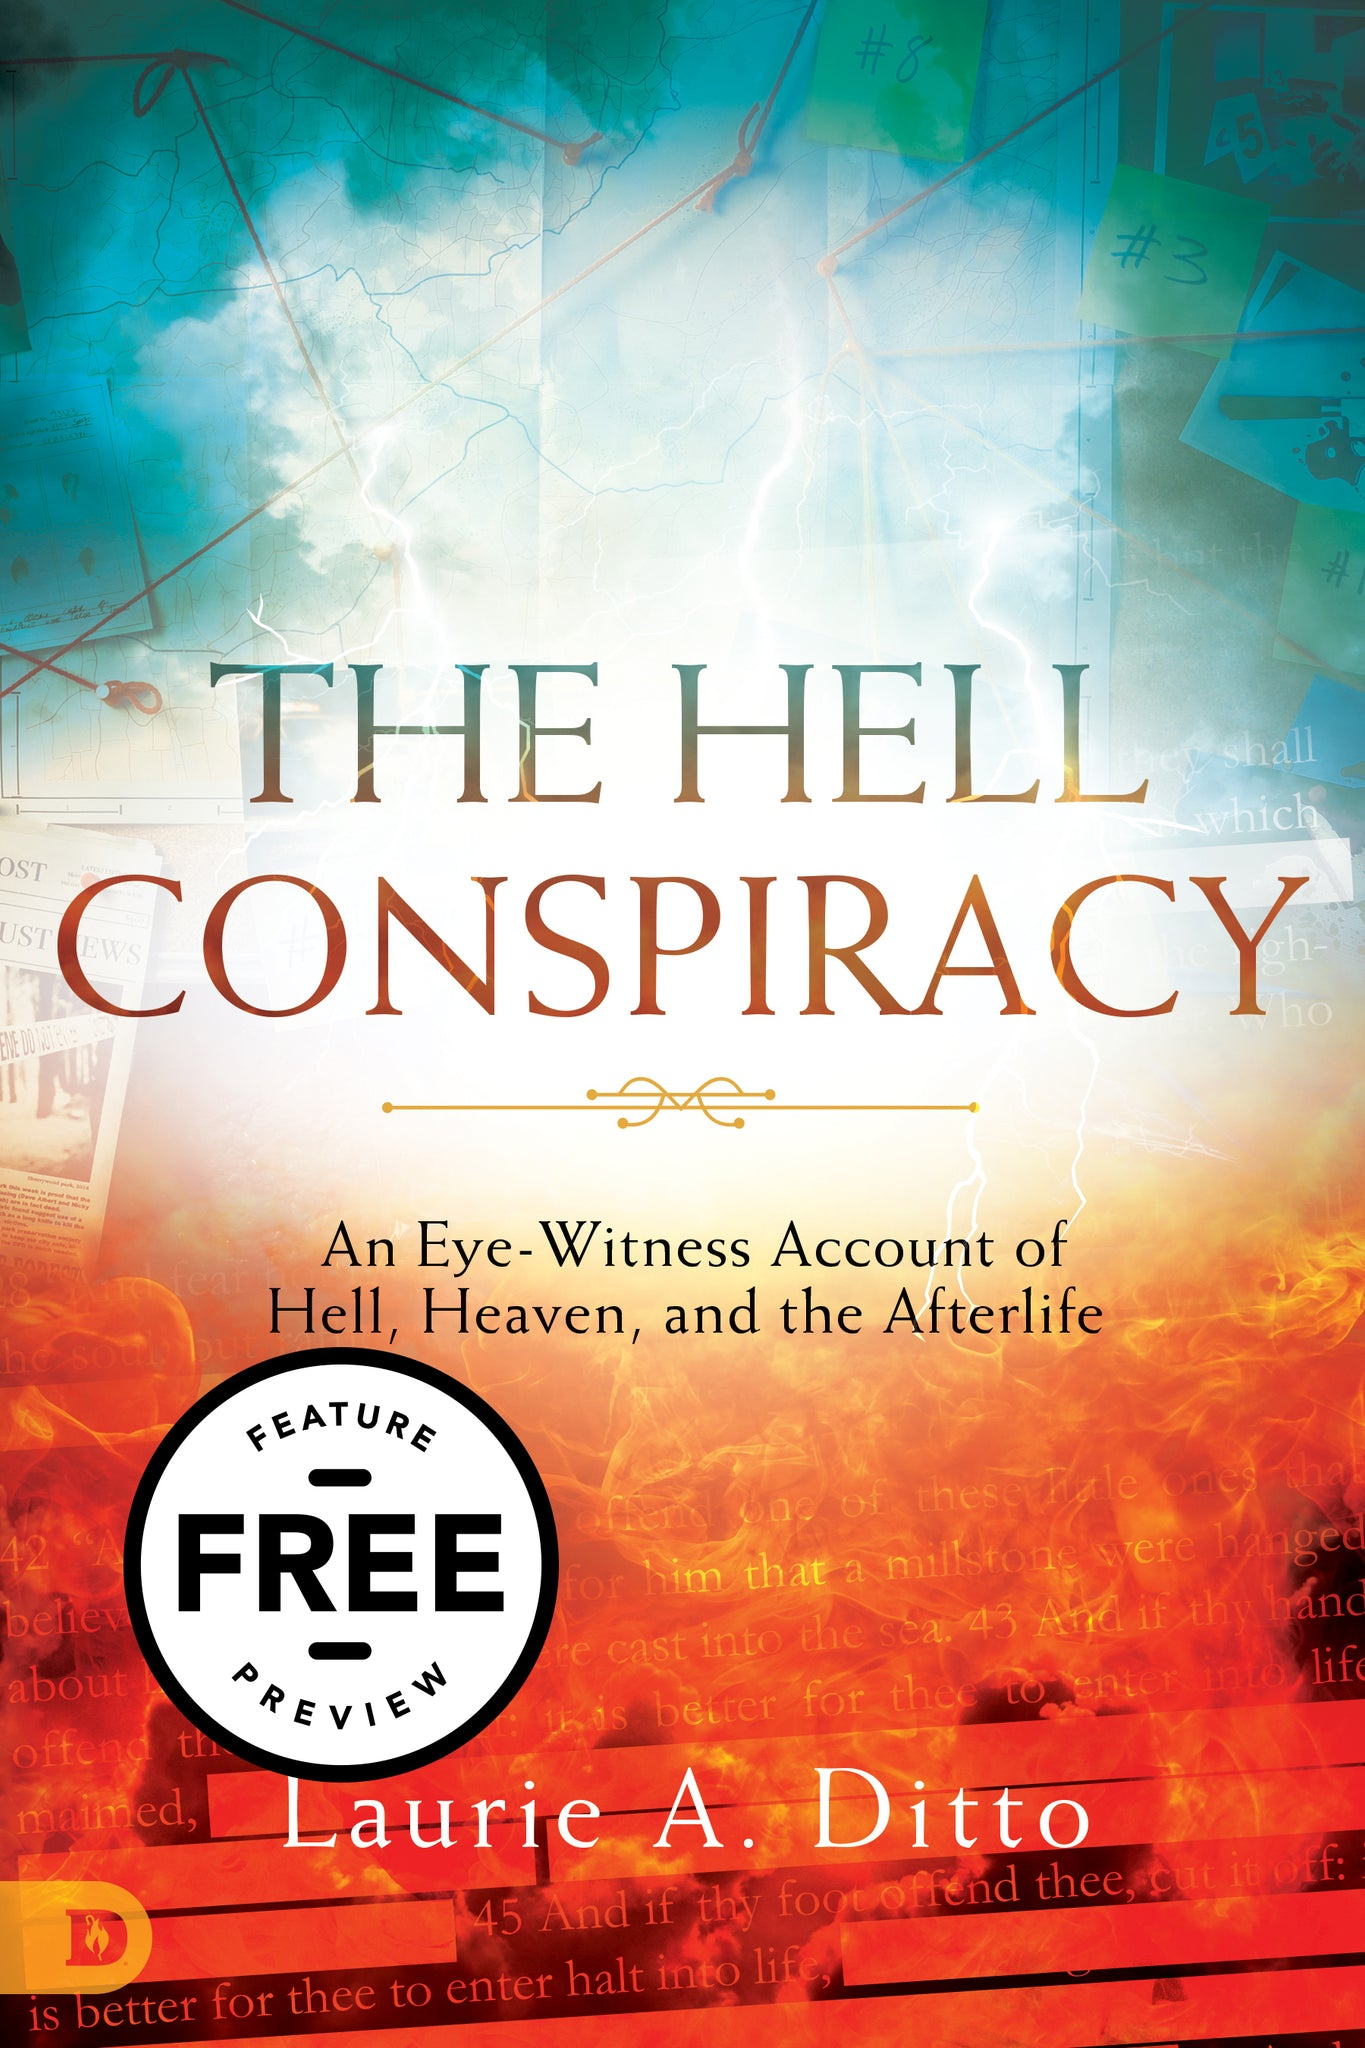 The Hell Conspiracy Free Feature Message (PDF Download)